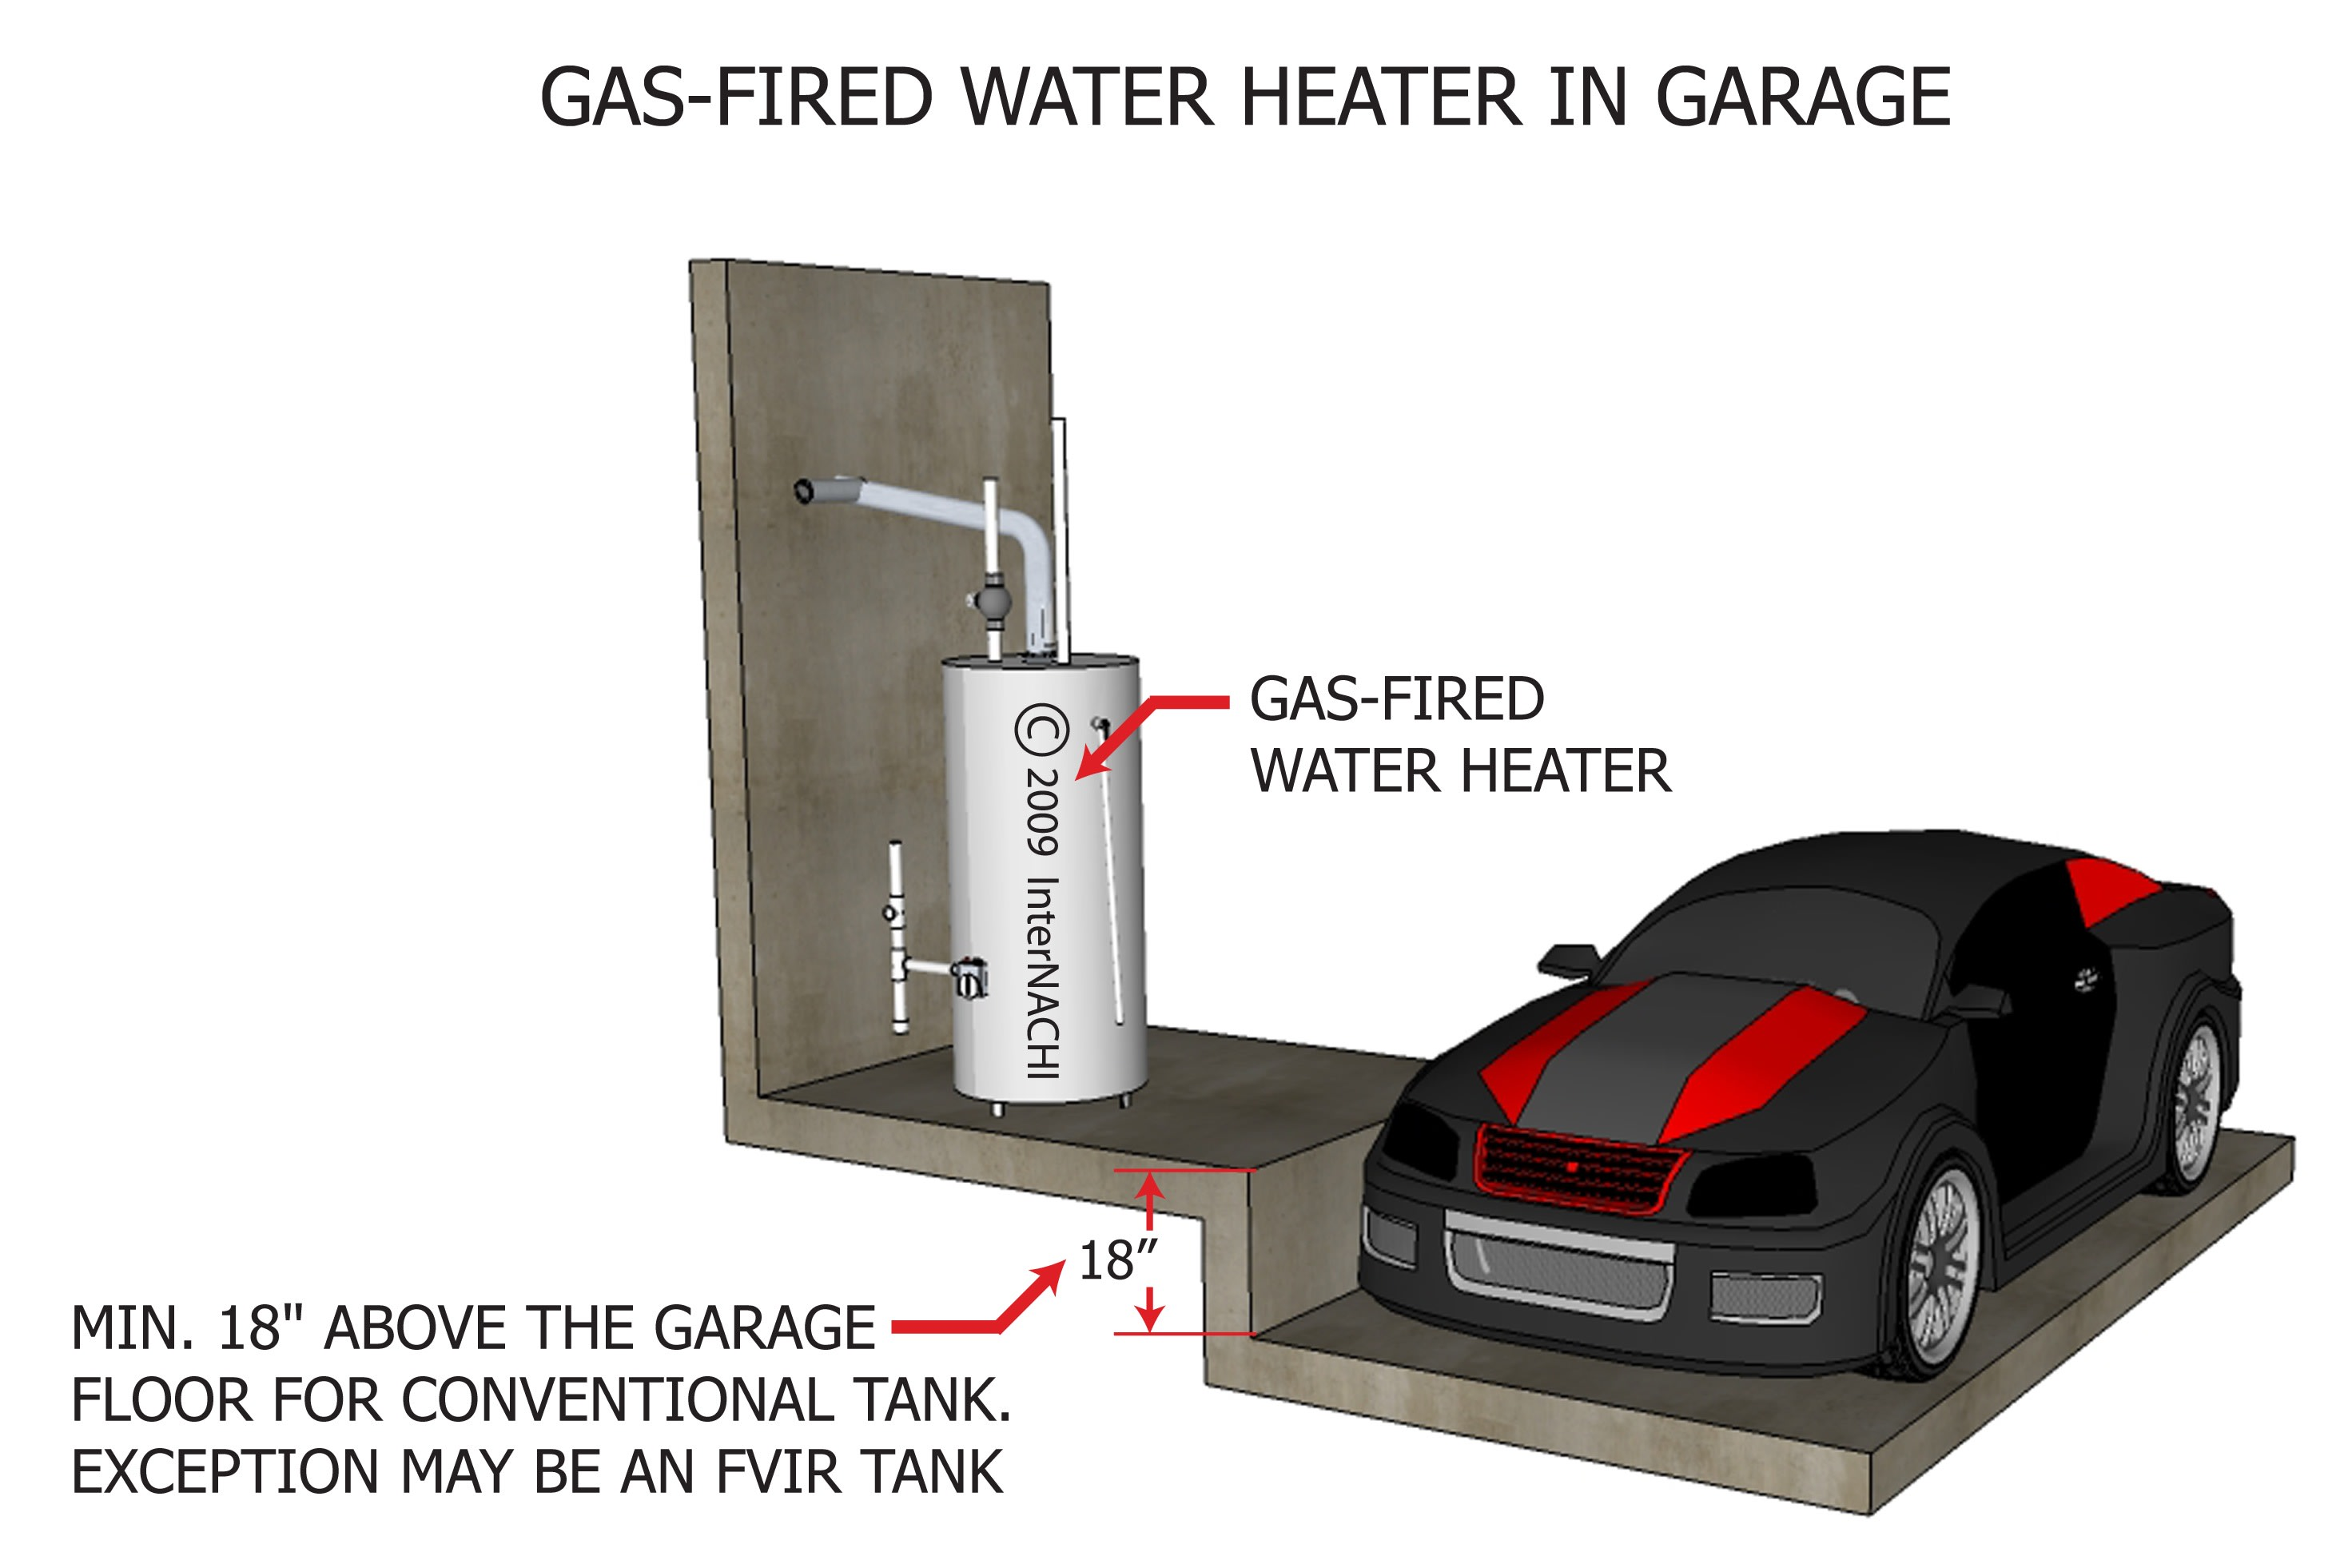 Gas-fired water heater in garage.